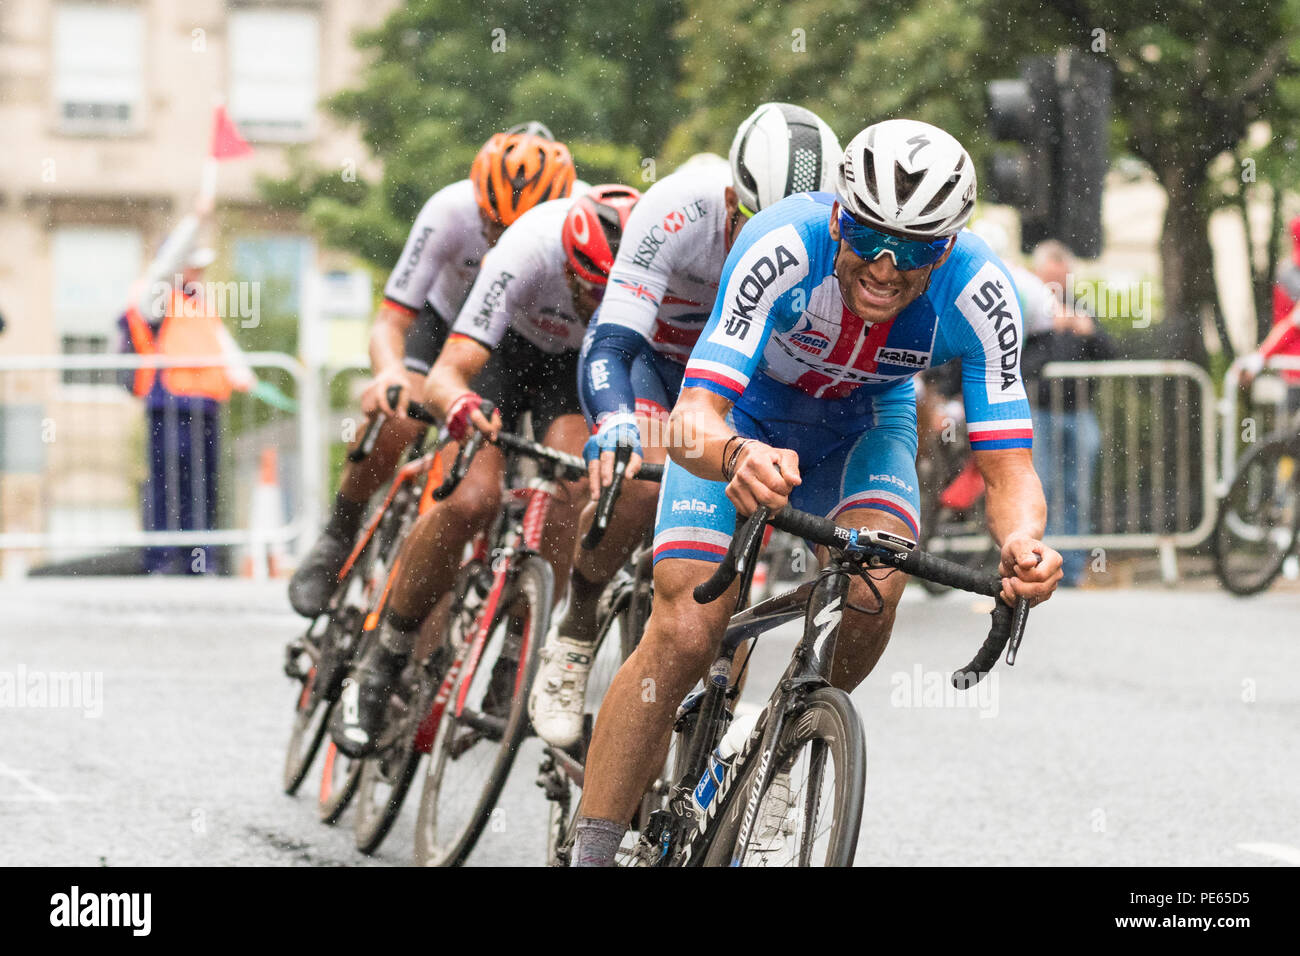 Glasgow, Scotland, UK - 12 August 2018: European Championships 2018 - difficult conditions in the rain for competitors in the European Championships men's road race in Glasgow Credit: Kay Roxby/Alamy Live News - Stock Image